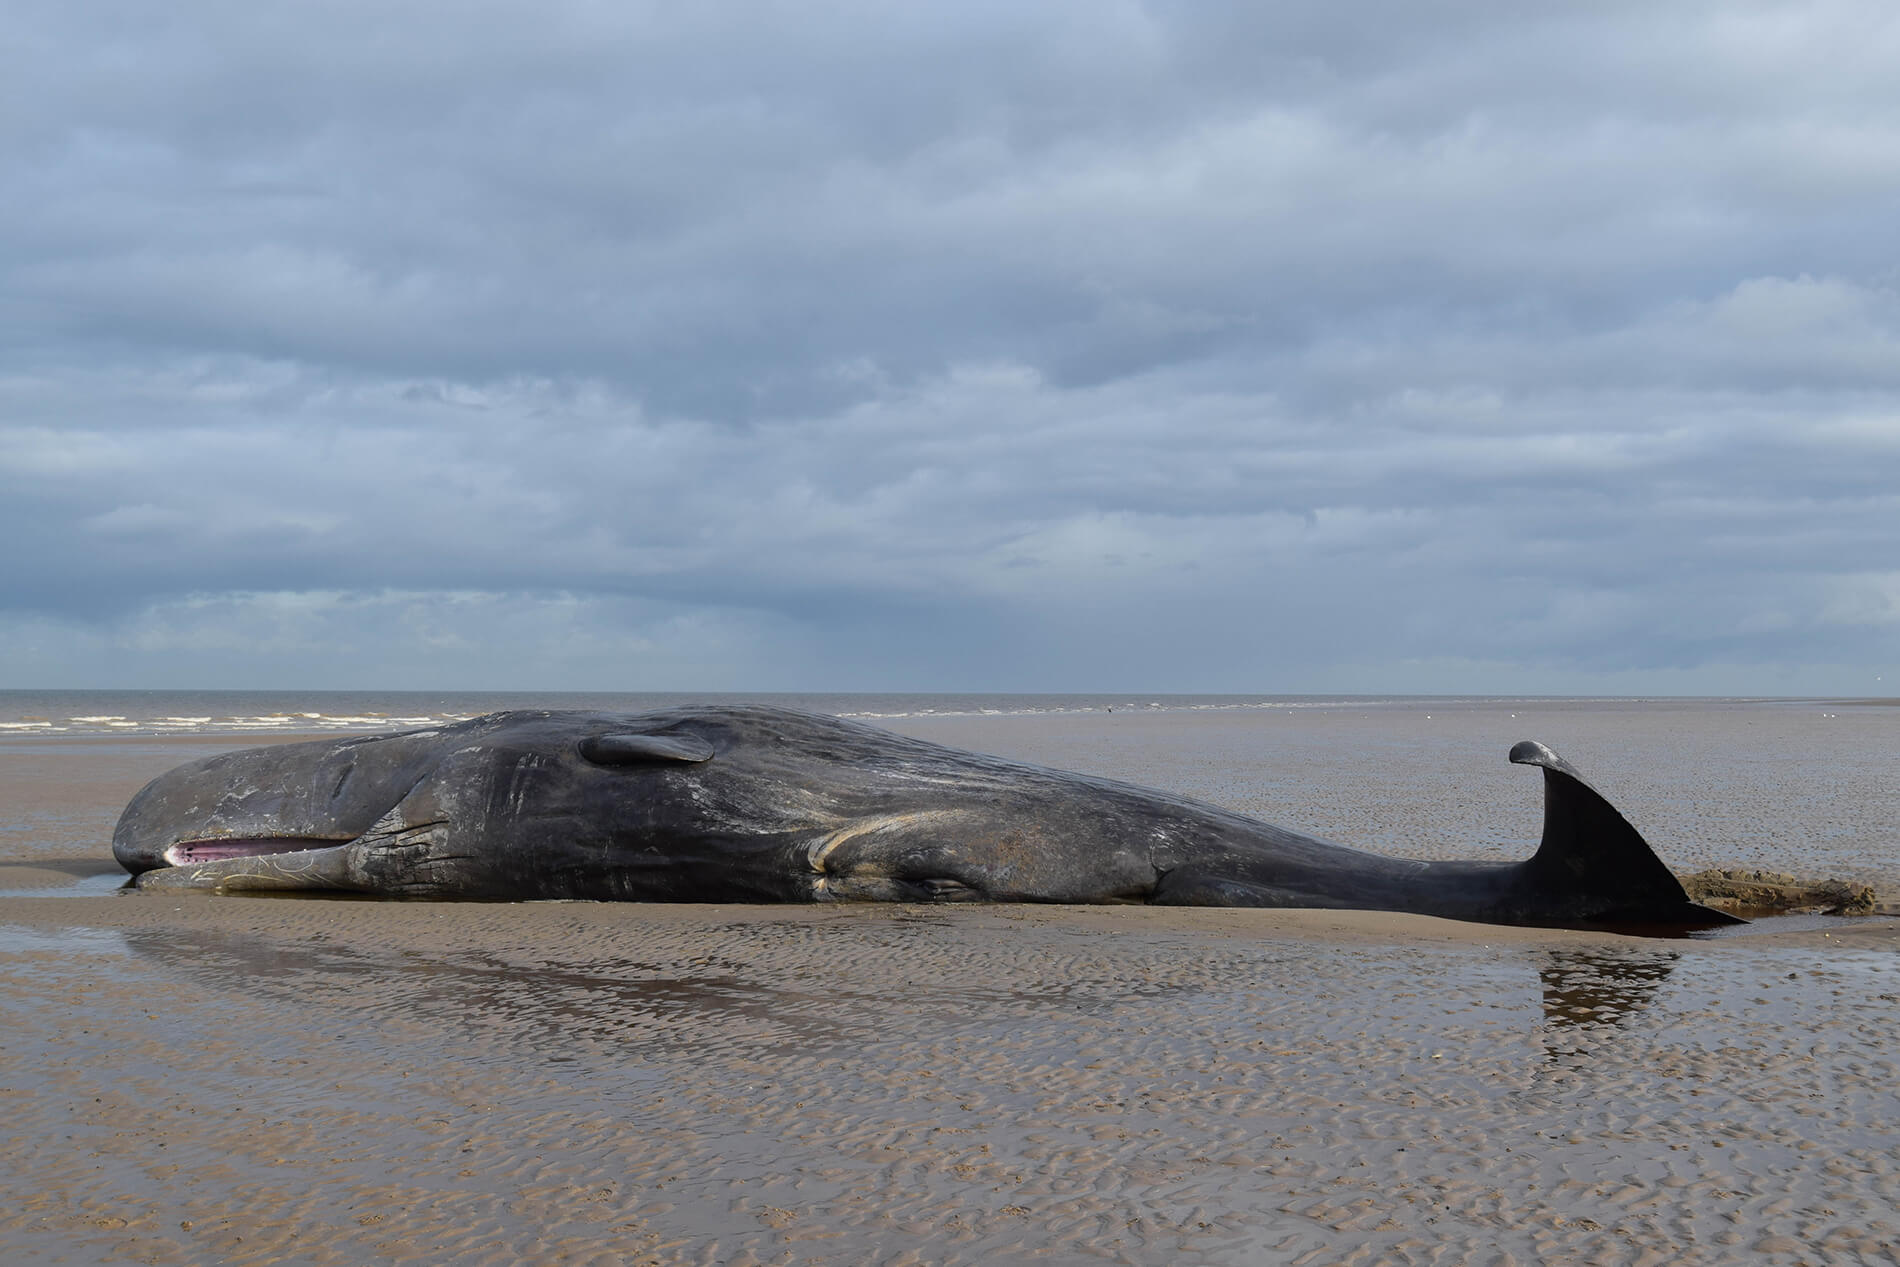 Whale dies after swallowing 8kg of plastic waste